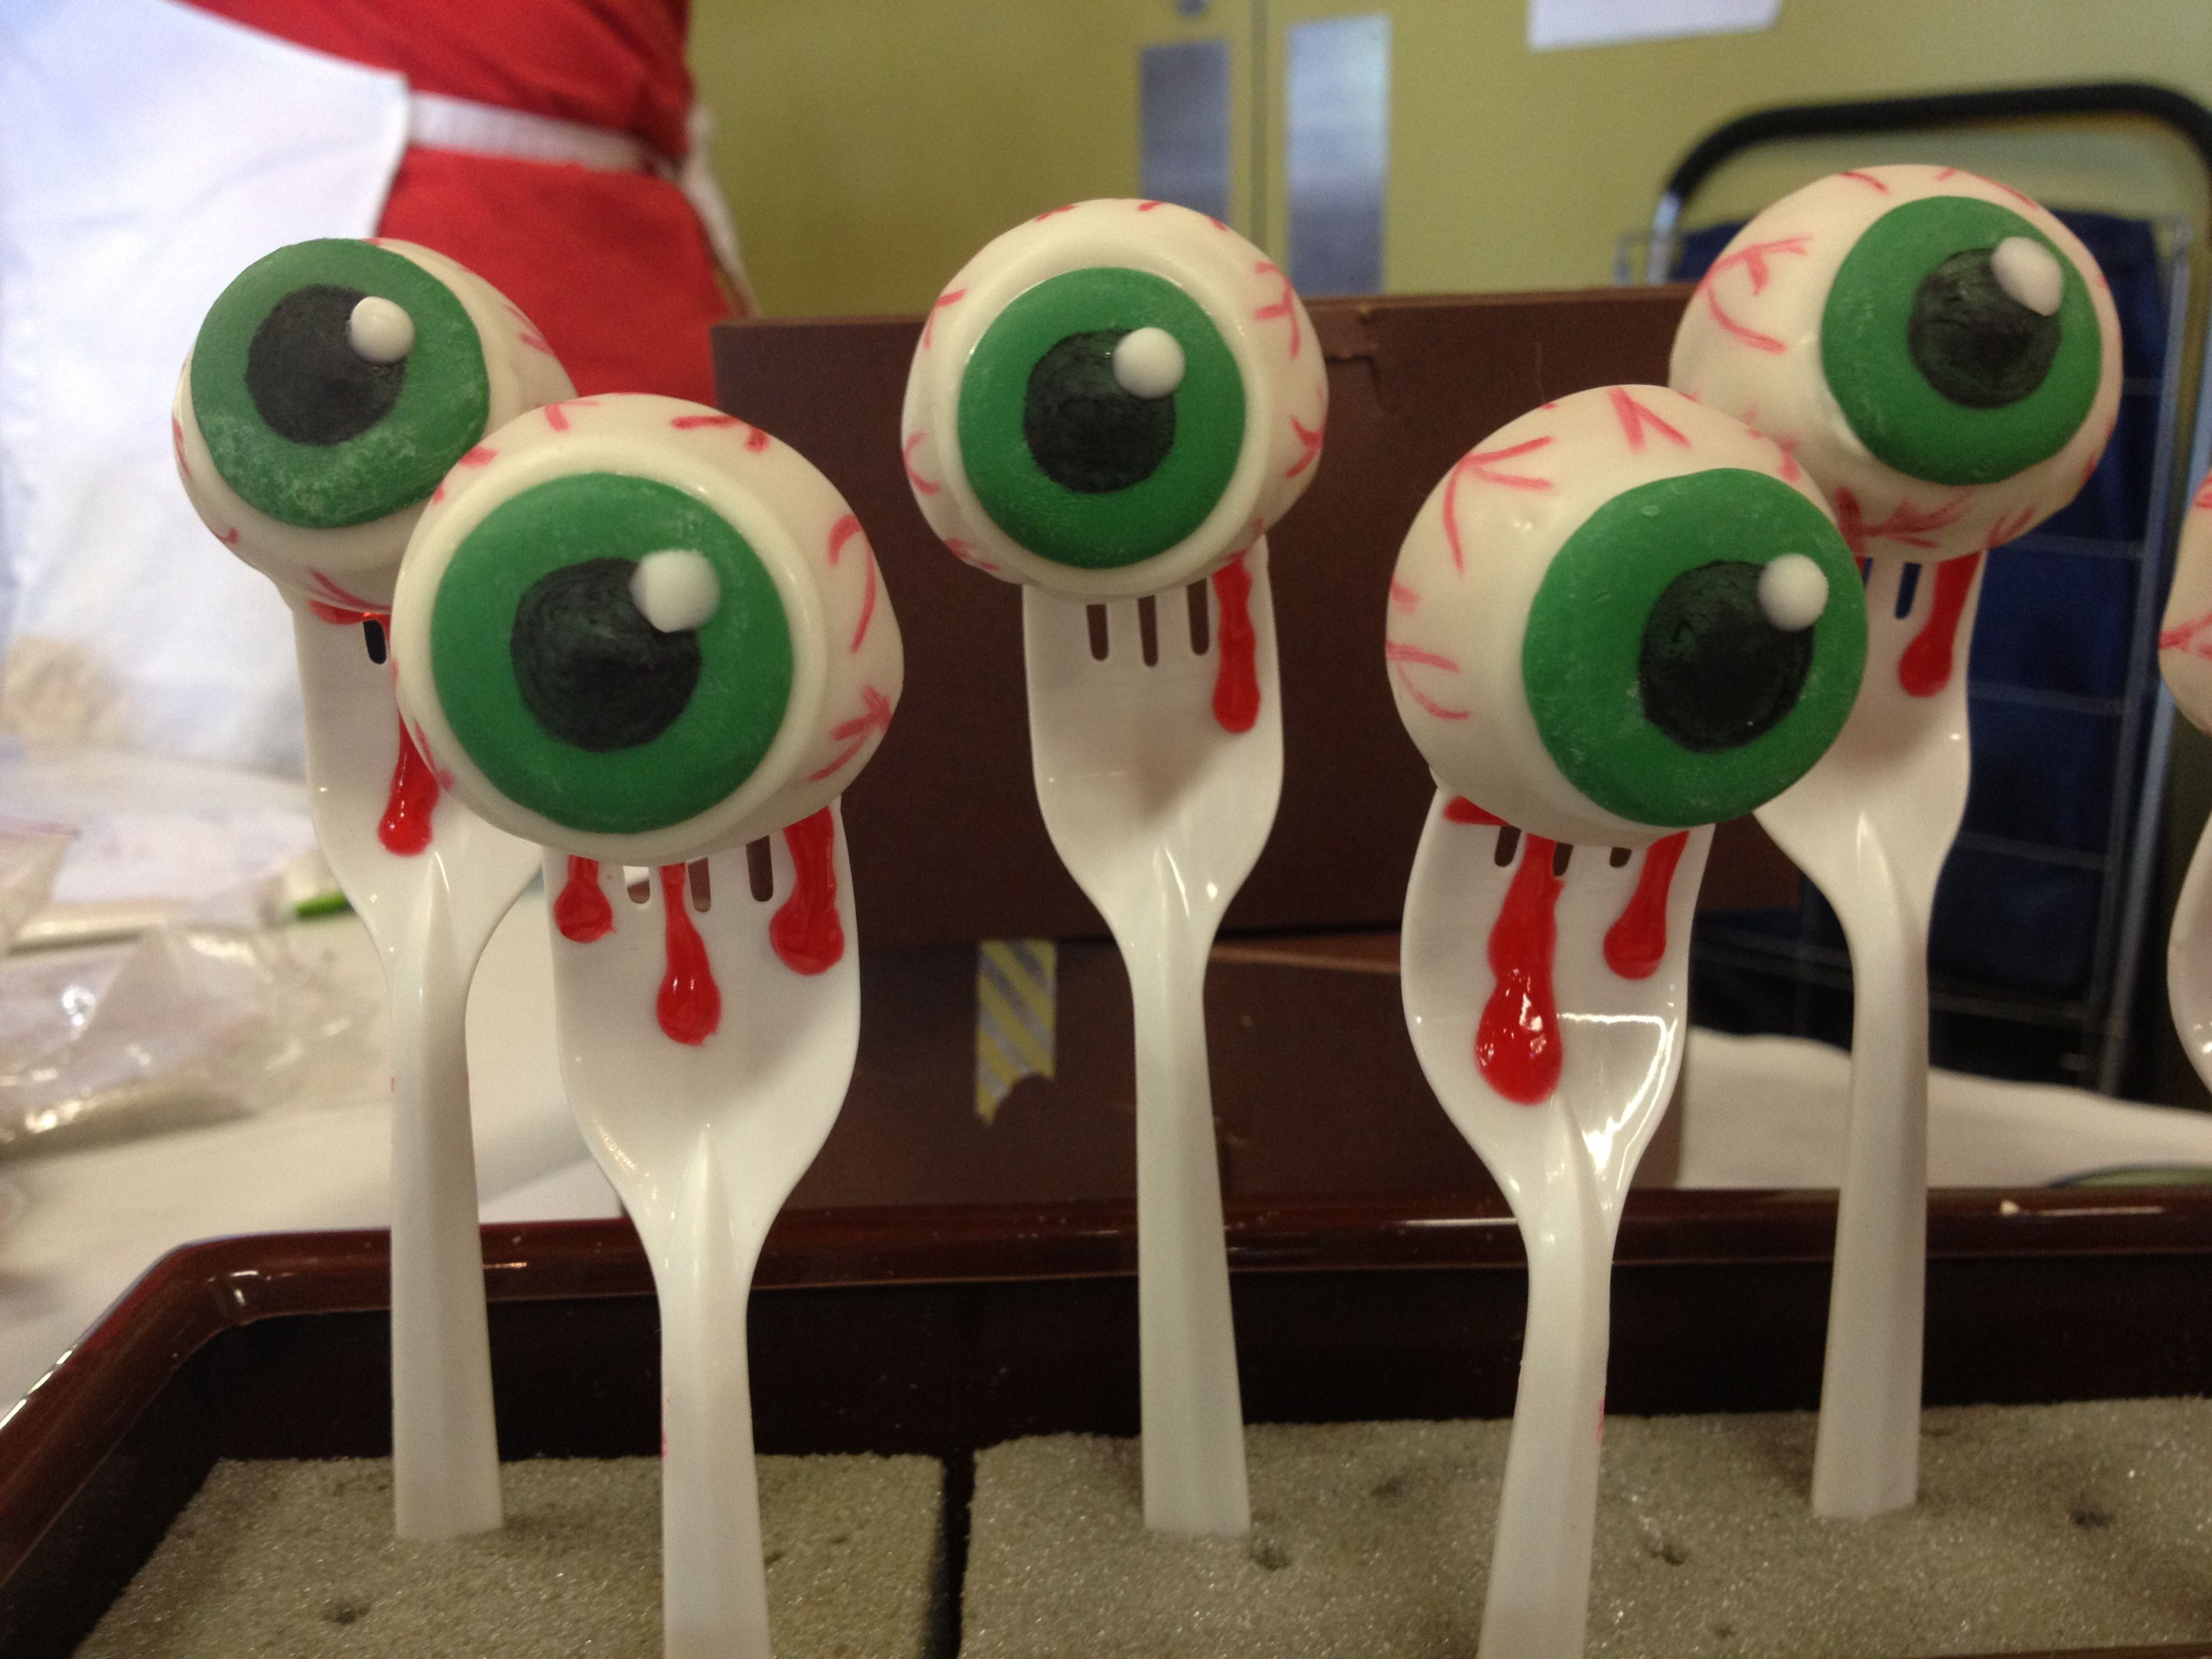 Eyeball Cake Pops | Halloween Ideas - 1569.2KB